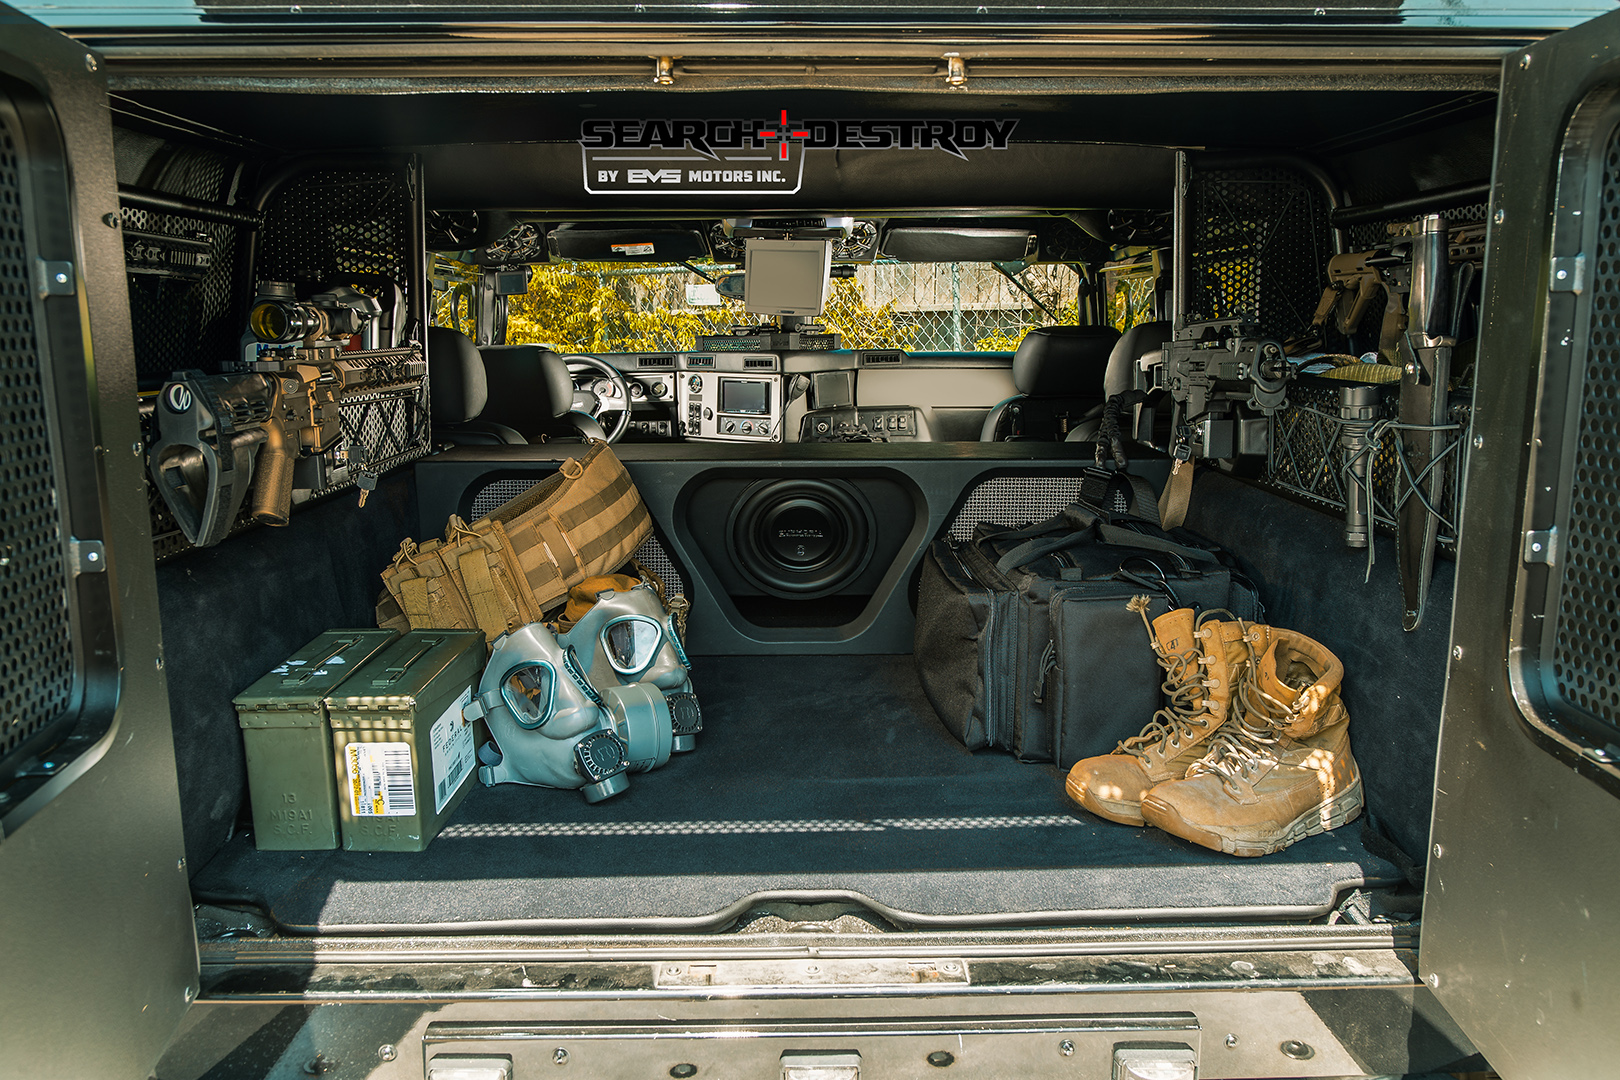 Hummer h1 tactical search destroy tier 1 for sale evs motors hummer h1 tactical search destroy tier 1 for sale evs motors search and destroy h1 hummer vanachro Choice Image